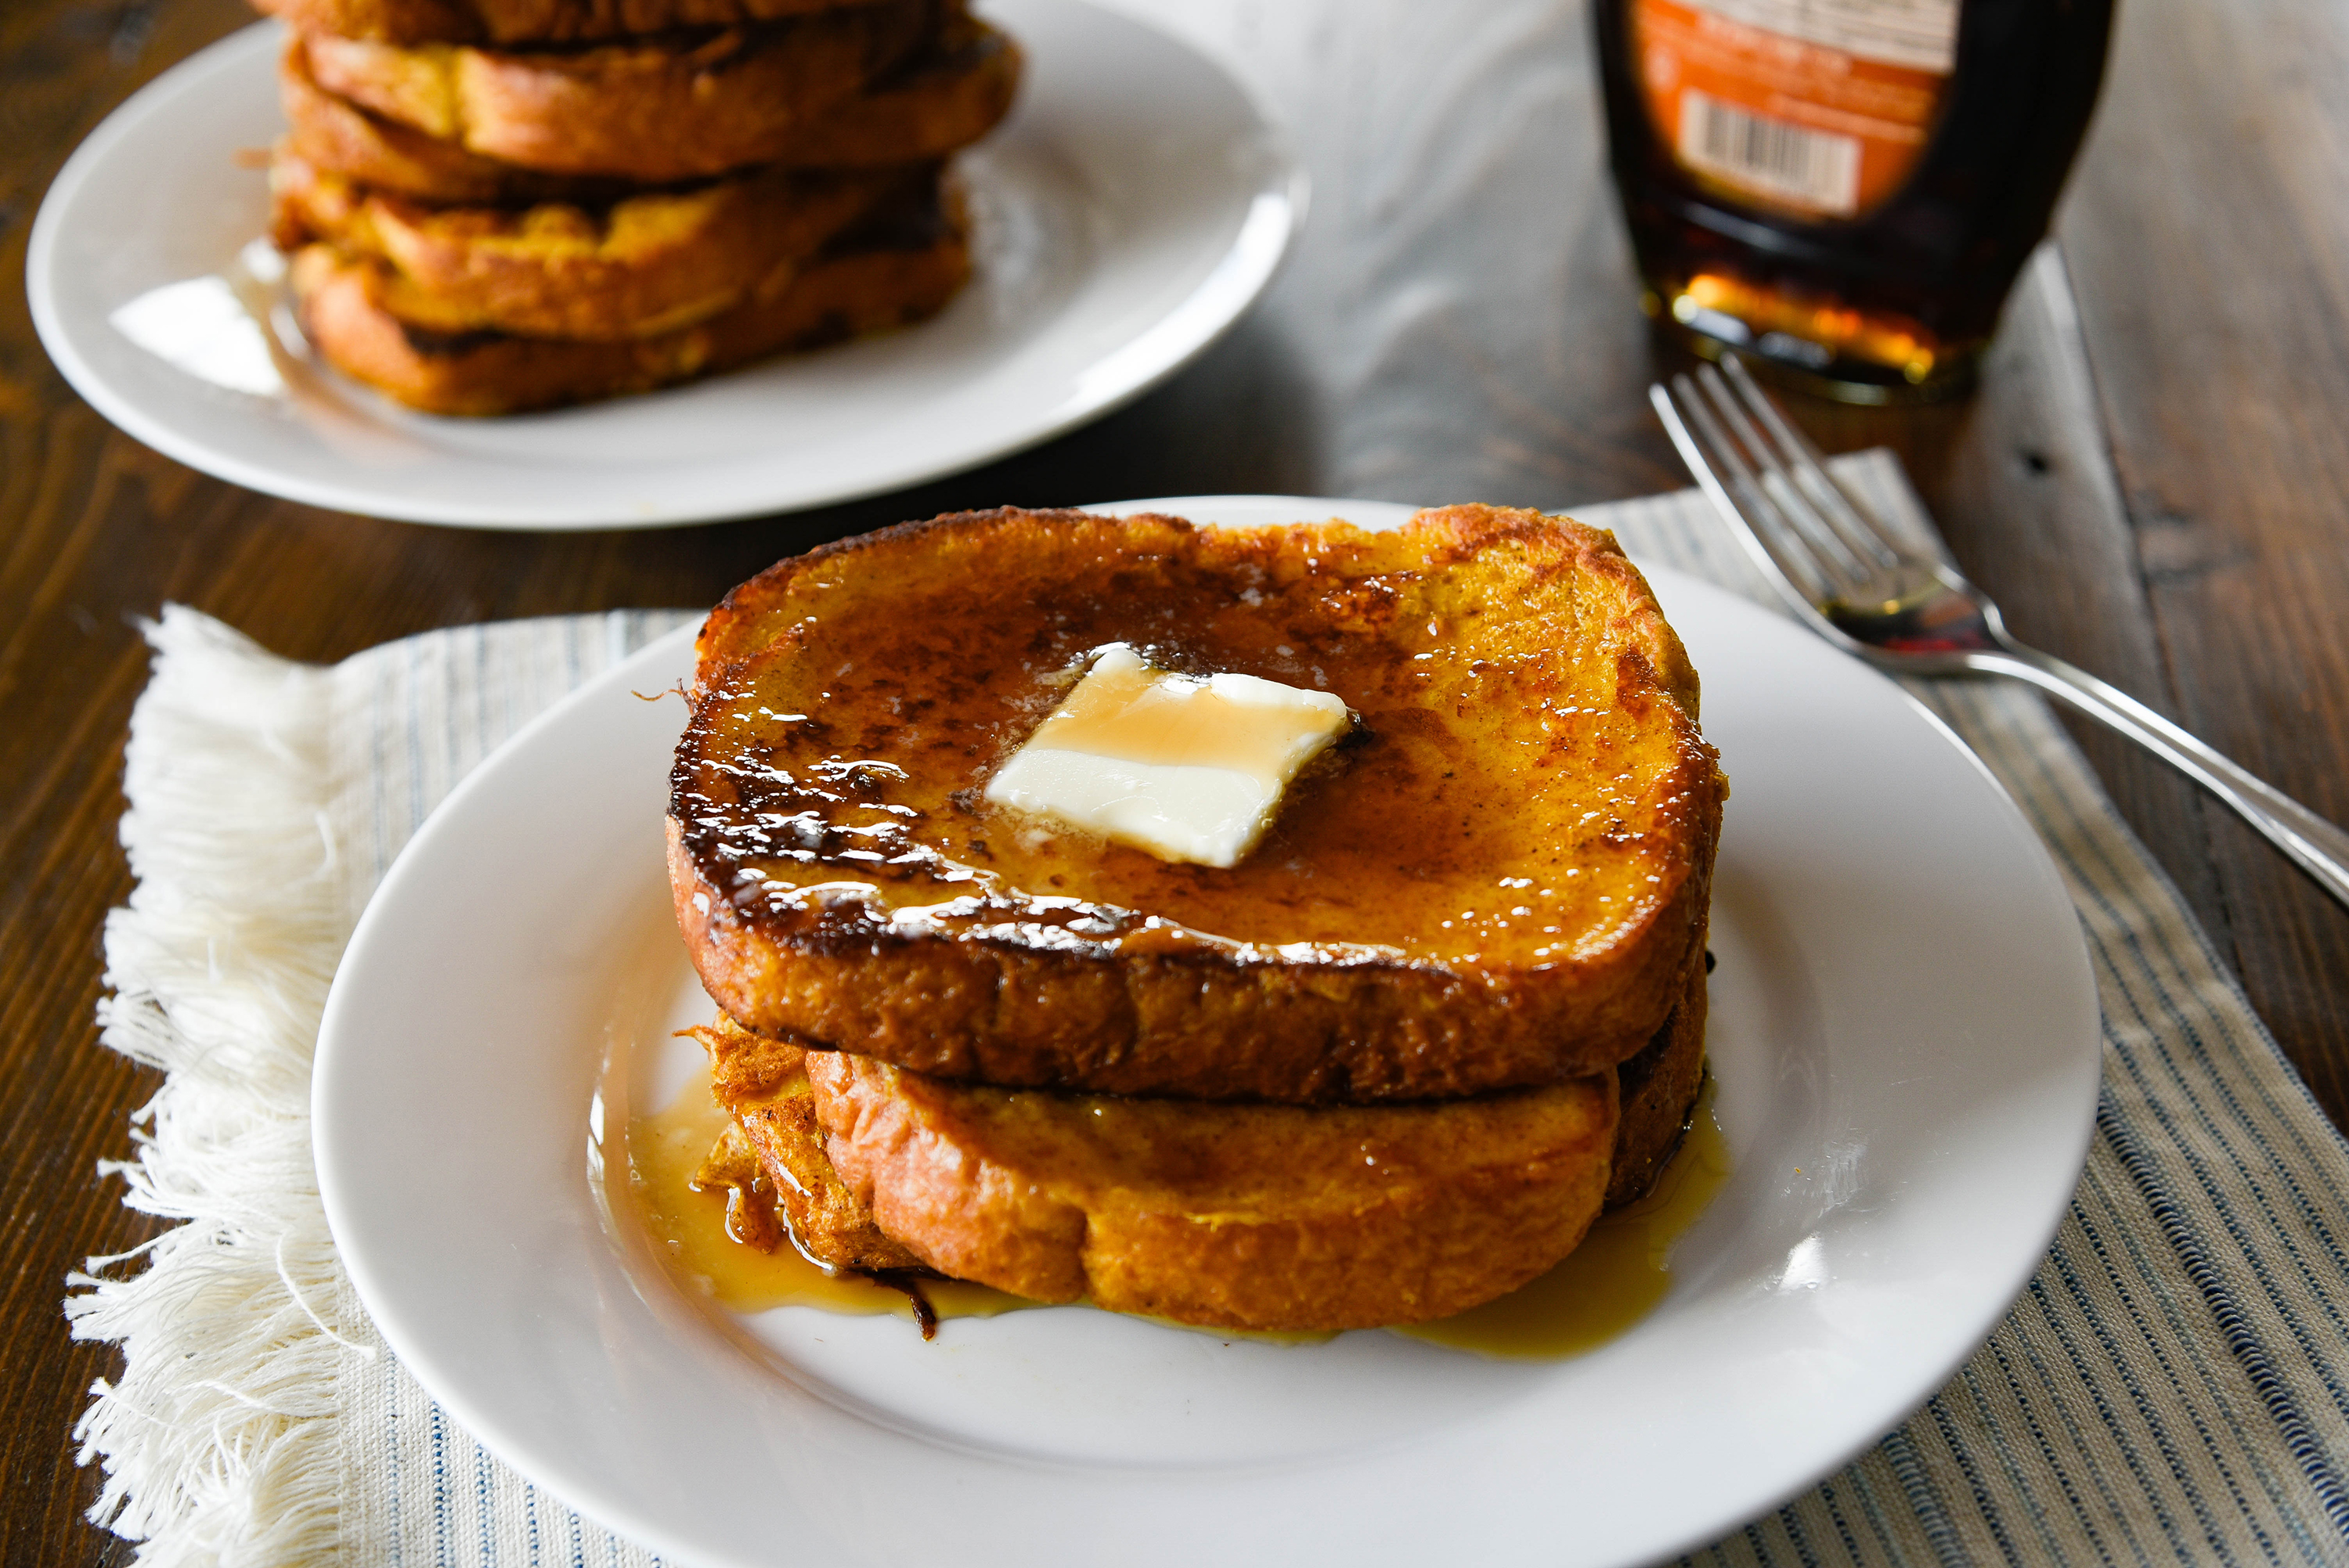 Stack of French Toast pieces w/ syrup.